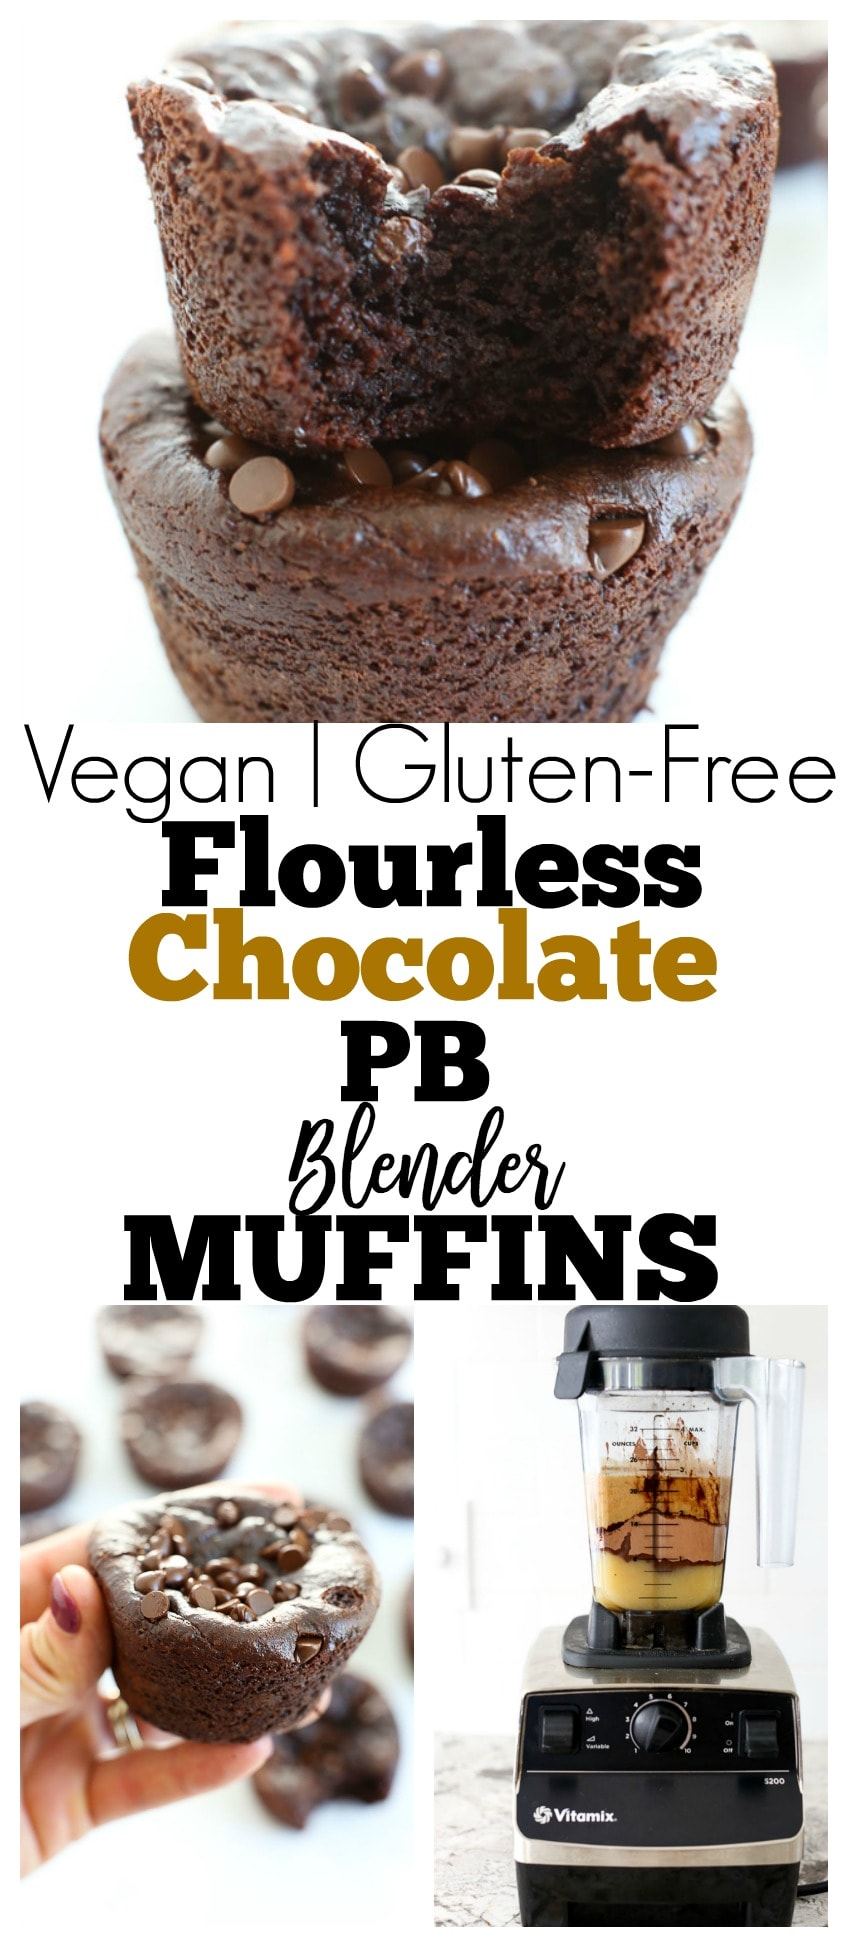 gluten-free, vegan, and no bananas in these Flourless Chocolate Peanut Butter Blender Muffins Recipe. Healthy dessert, breakfast, or snack idea. Paleo friendly too